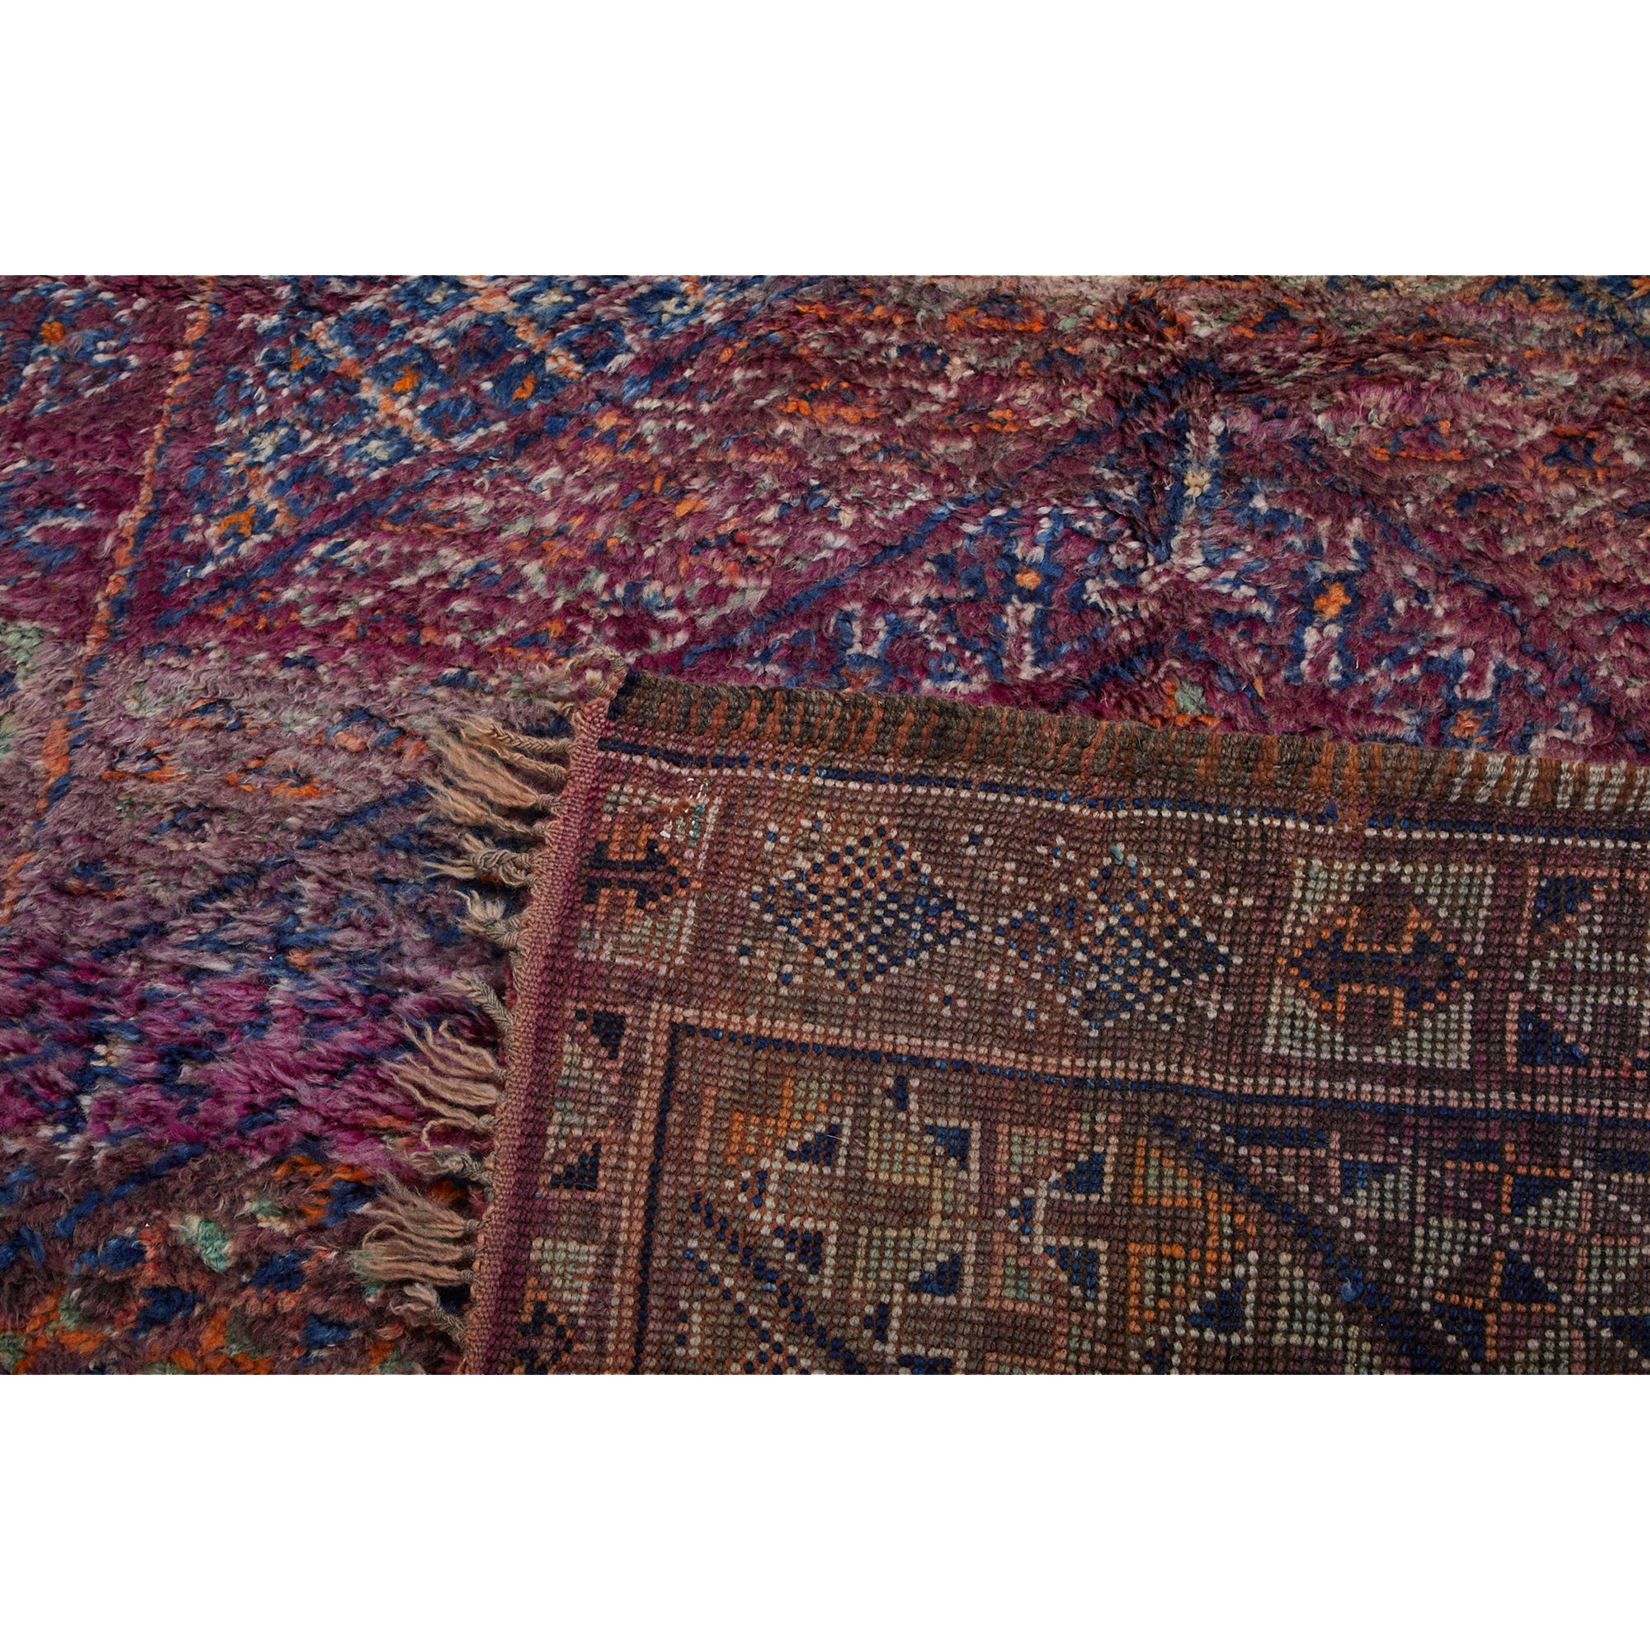 Purple Moroccan area rug with geometric pattern design - Kantara | Moroccan Rugs